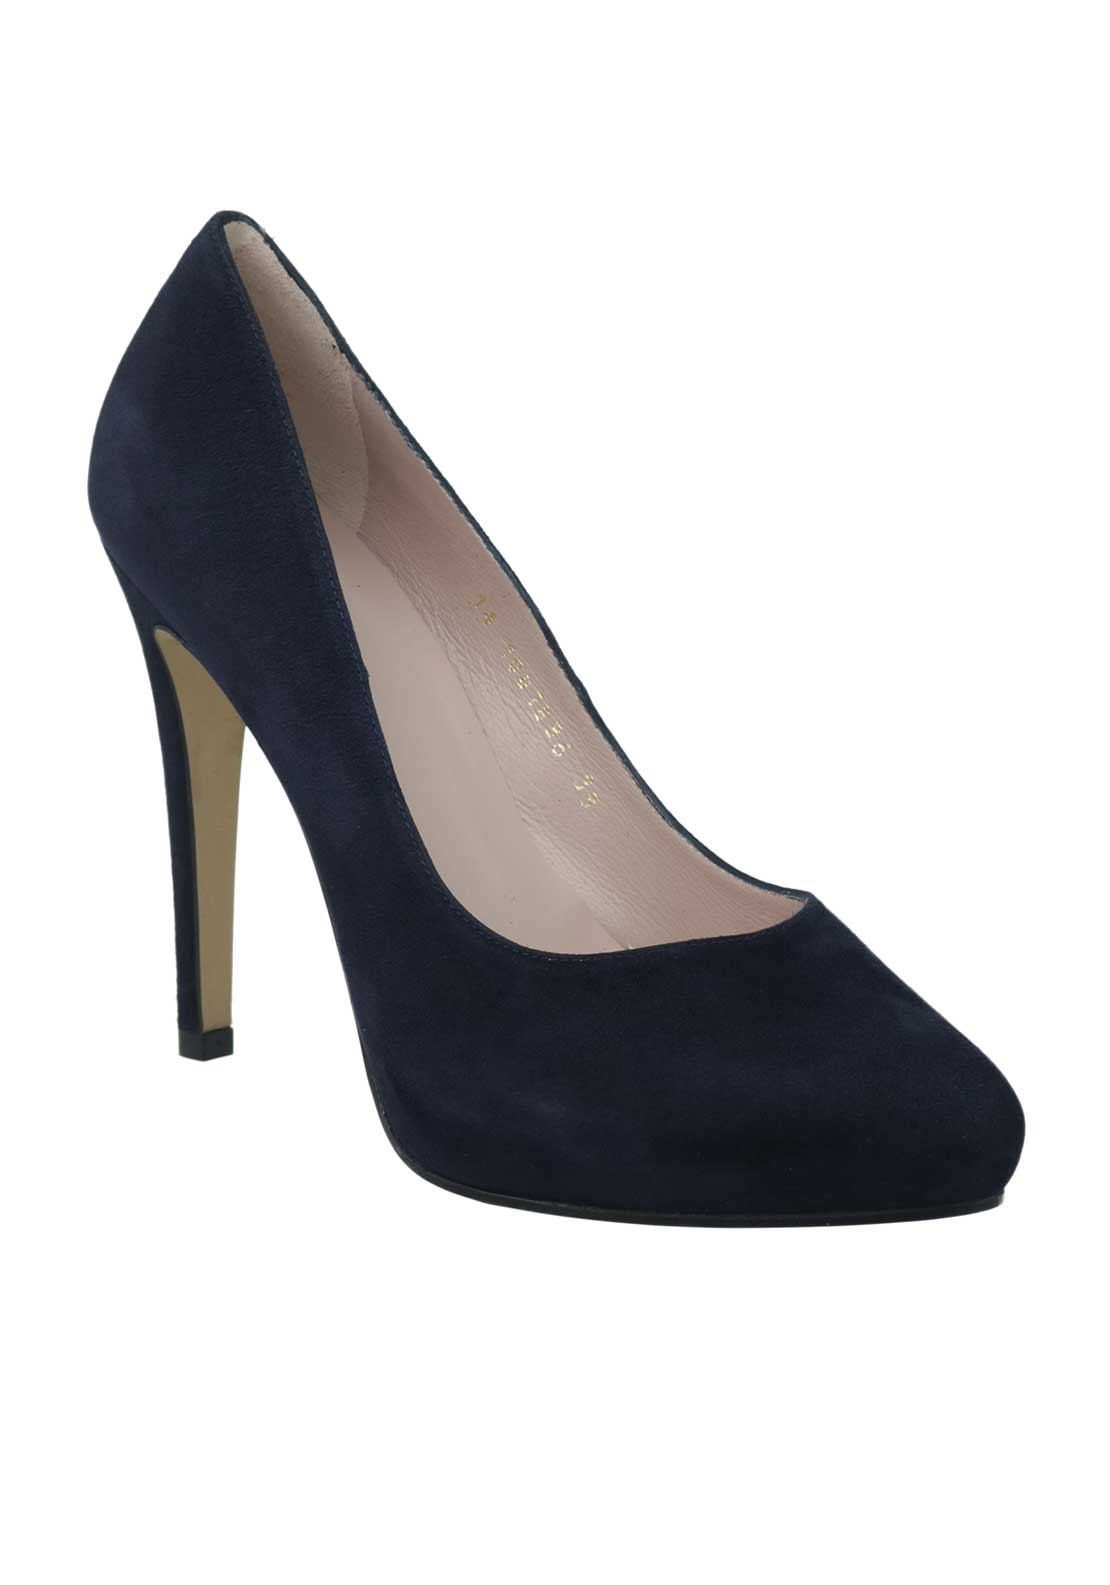 McElhinneys by Lodi Wava Suede Heeled Court Shoes, Navy